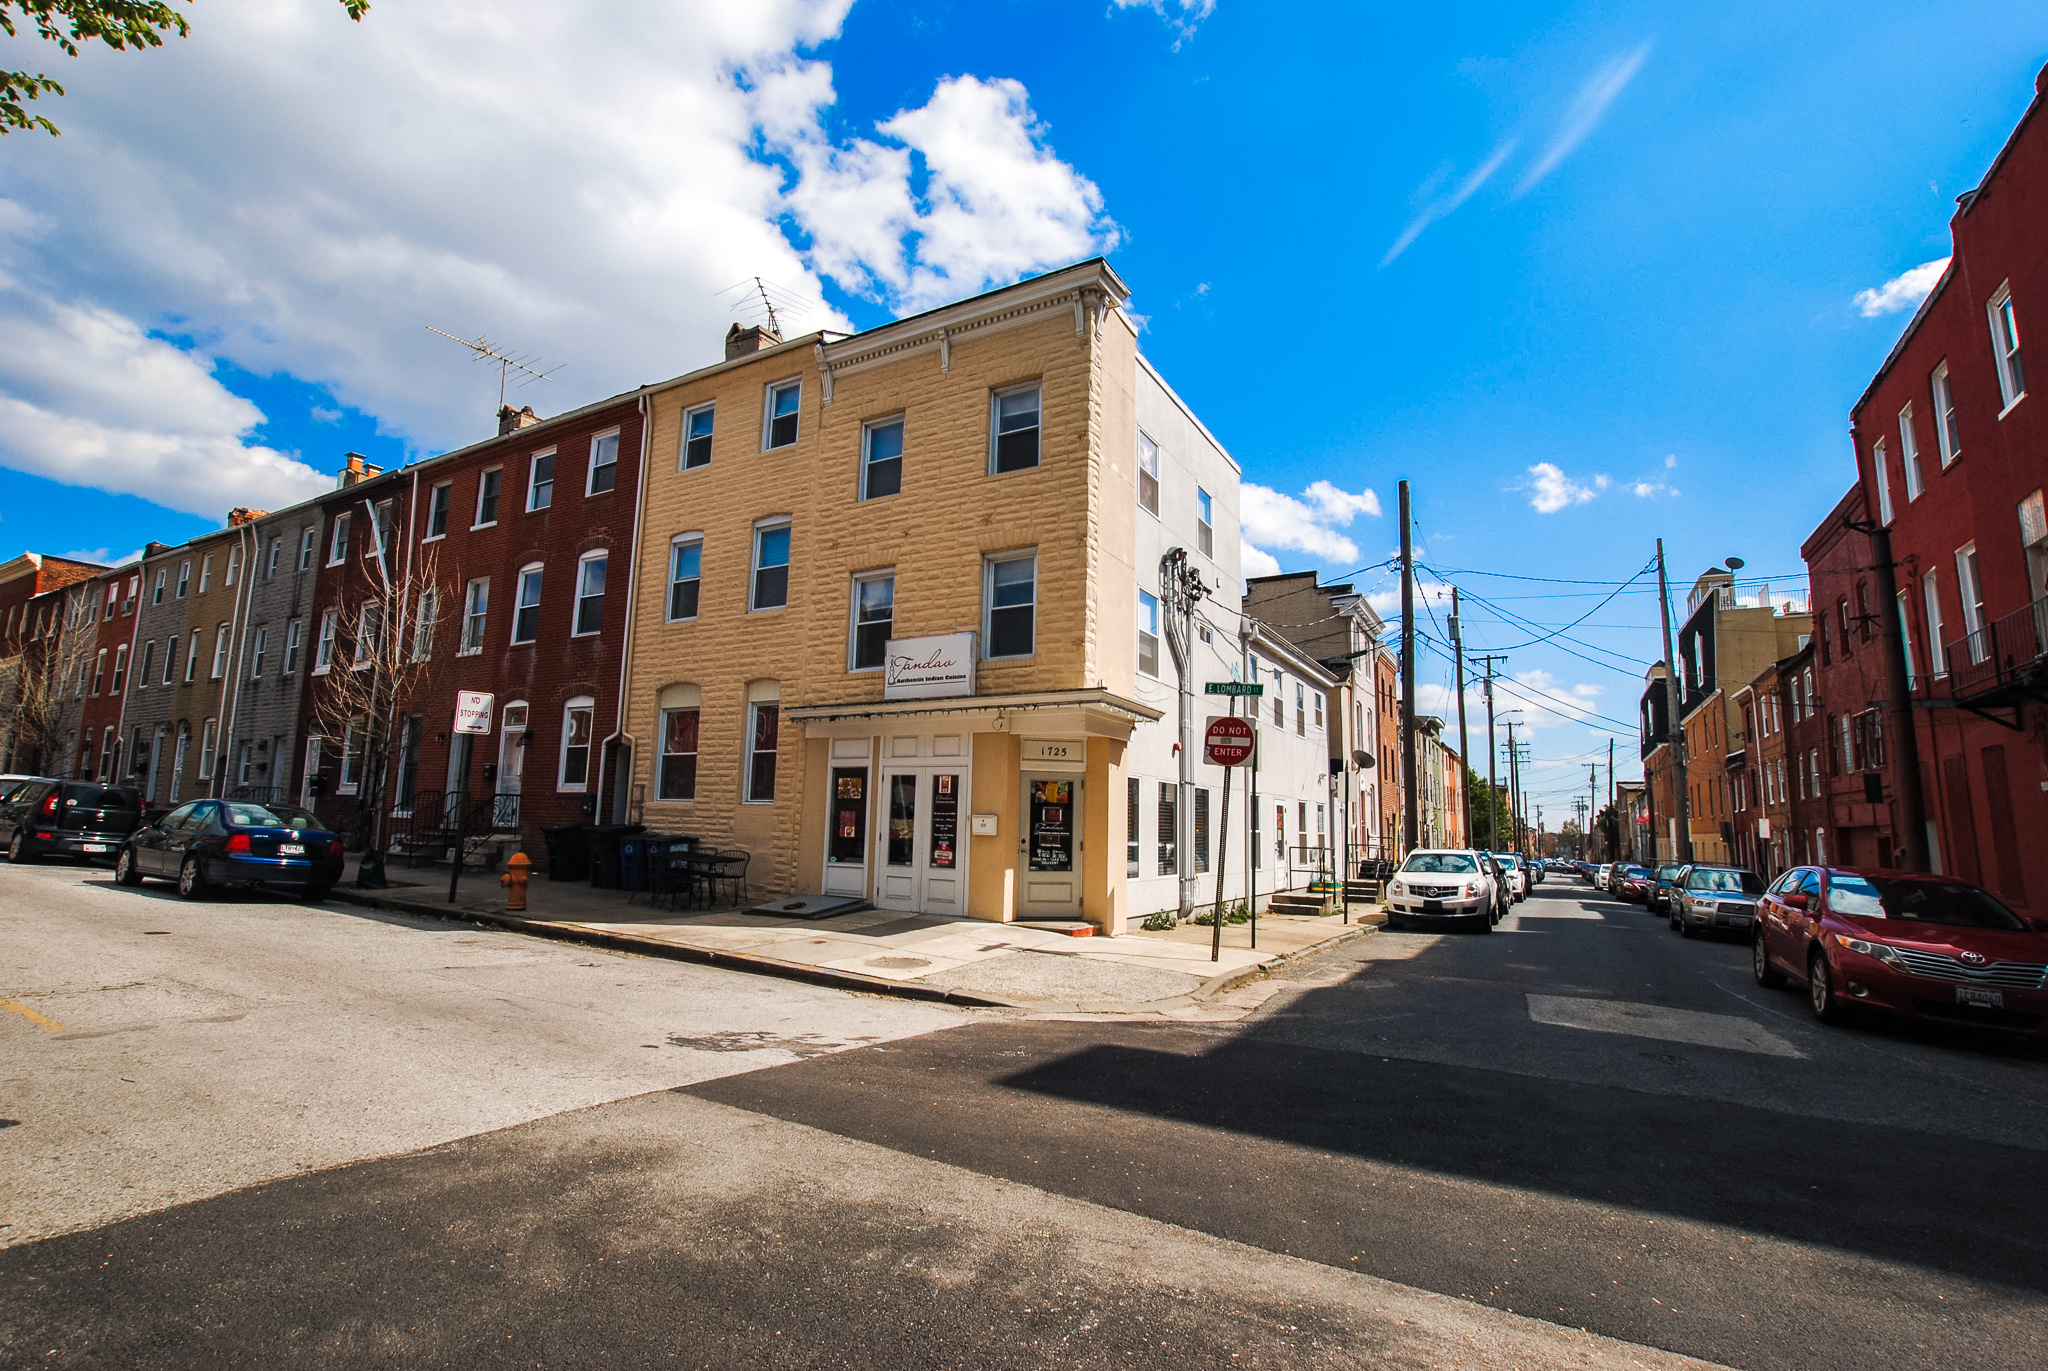 1725/1729 East Lombard St: 1 Retail Space/ 2 Apartments/ 1 Townhouse in Historic Upper Fells Point